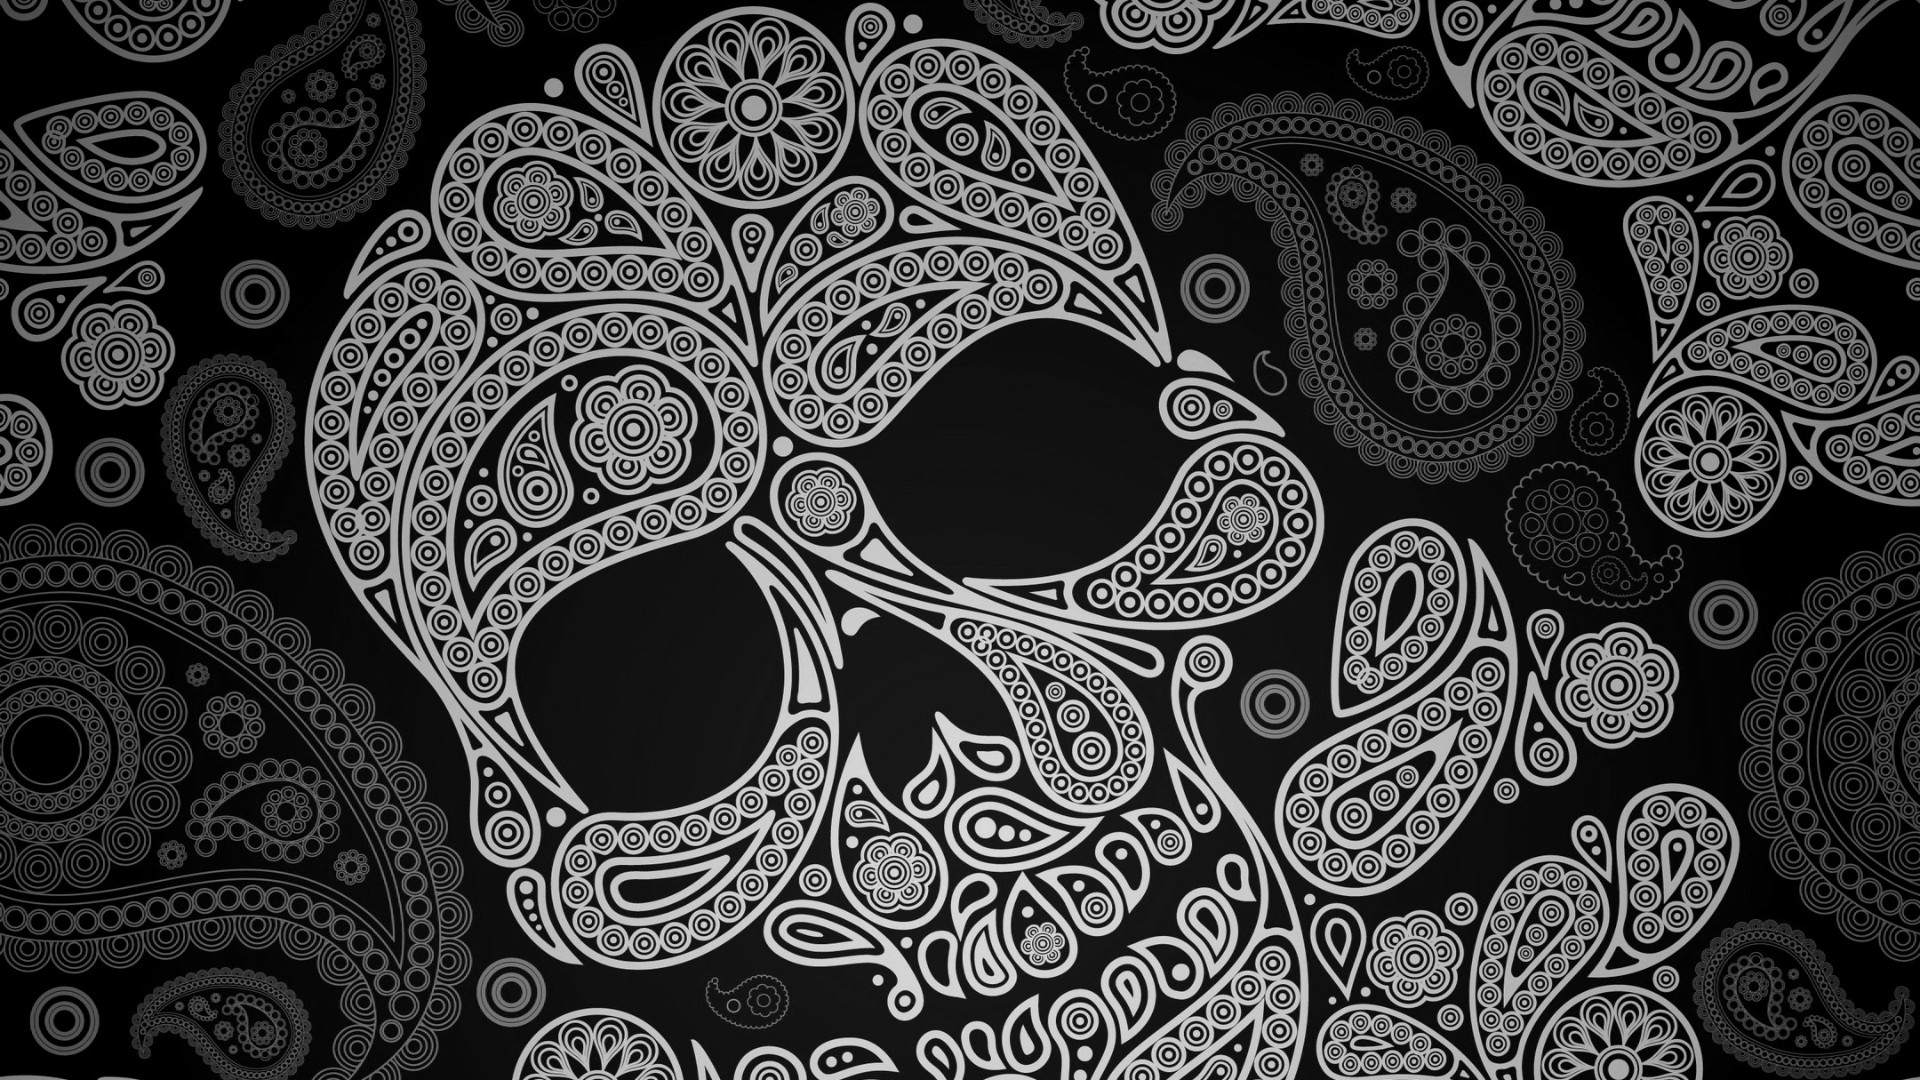 Skeleton Pattern Wallpaper Cute Skull Background 183 ① Download Free Awesome High Resolution